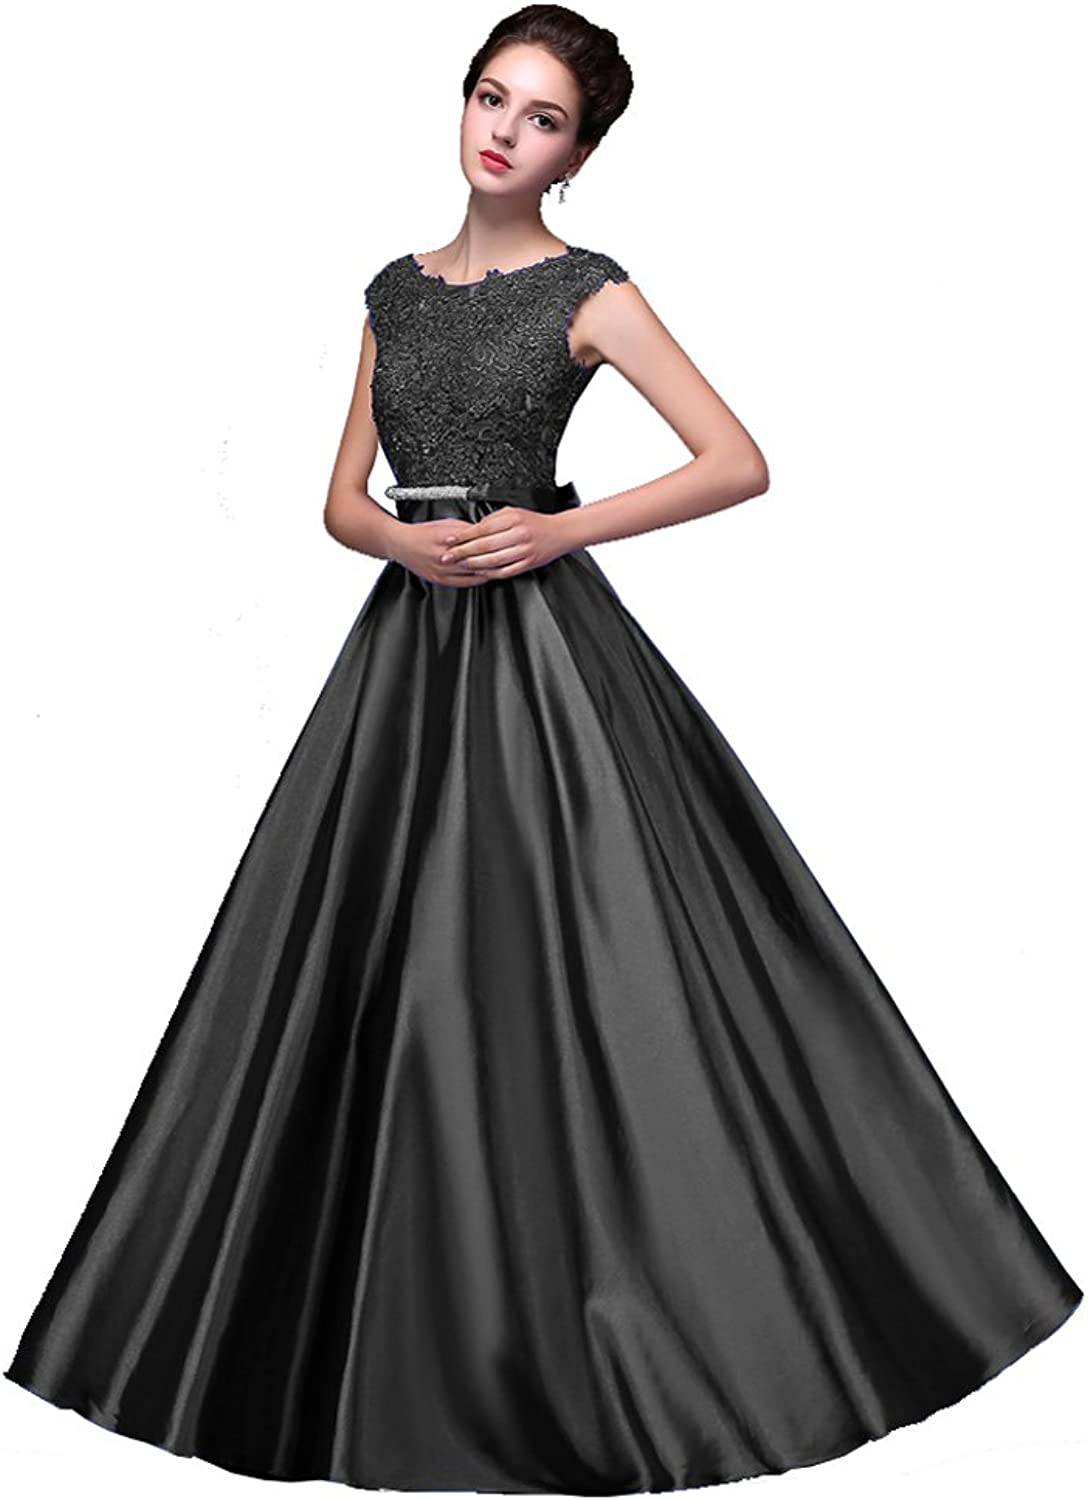 BeautyEmily Womens Long Formal Evening Dresses Appliques Prom Party Cocktail Wedding Guest Gowns Black US18 Plus Size